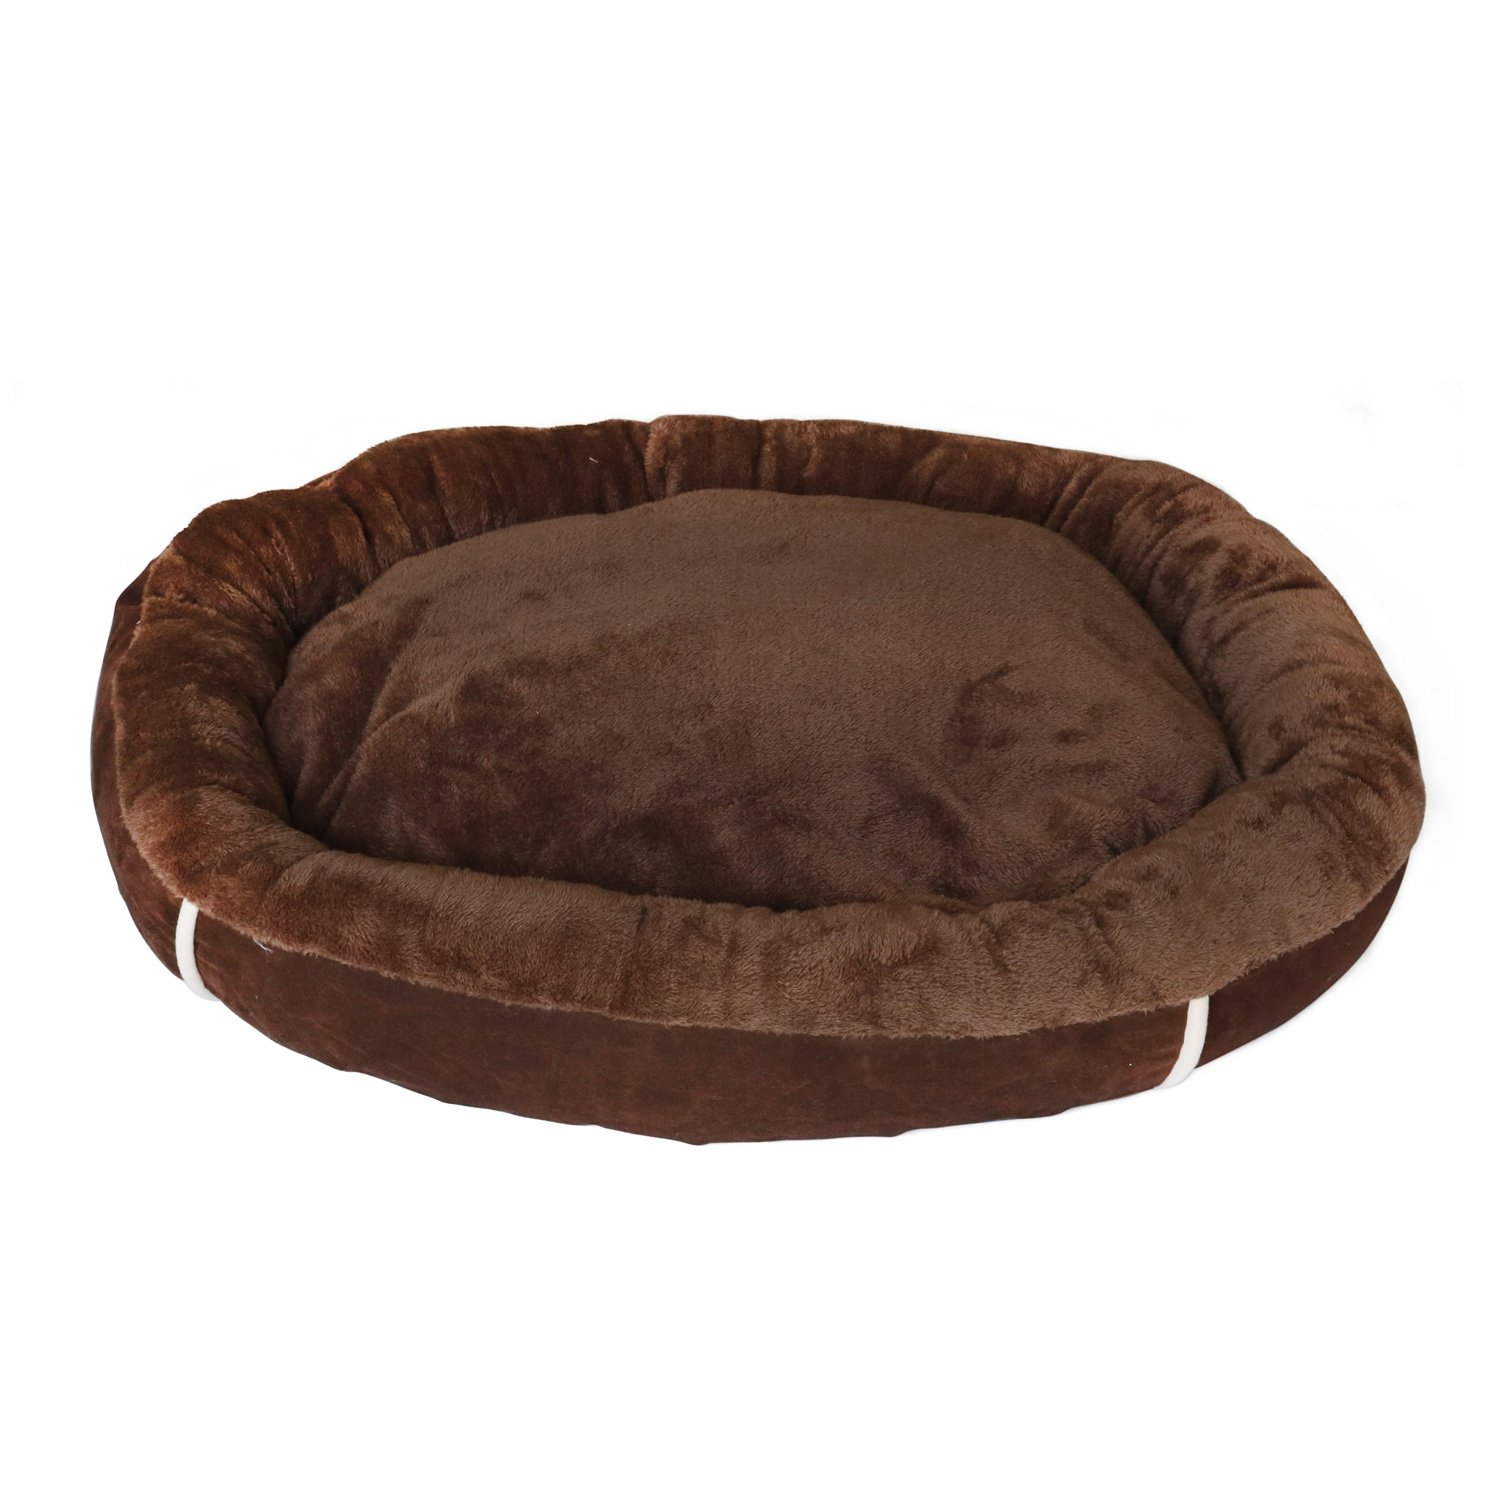 HappyCare Textiles 047393528995 Oval Pet Bed with Removable Insert, Brown Coffee, 33 28